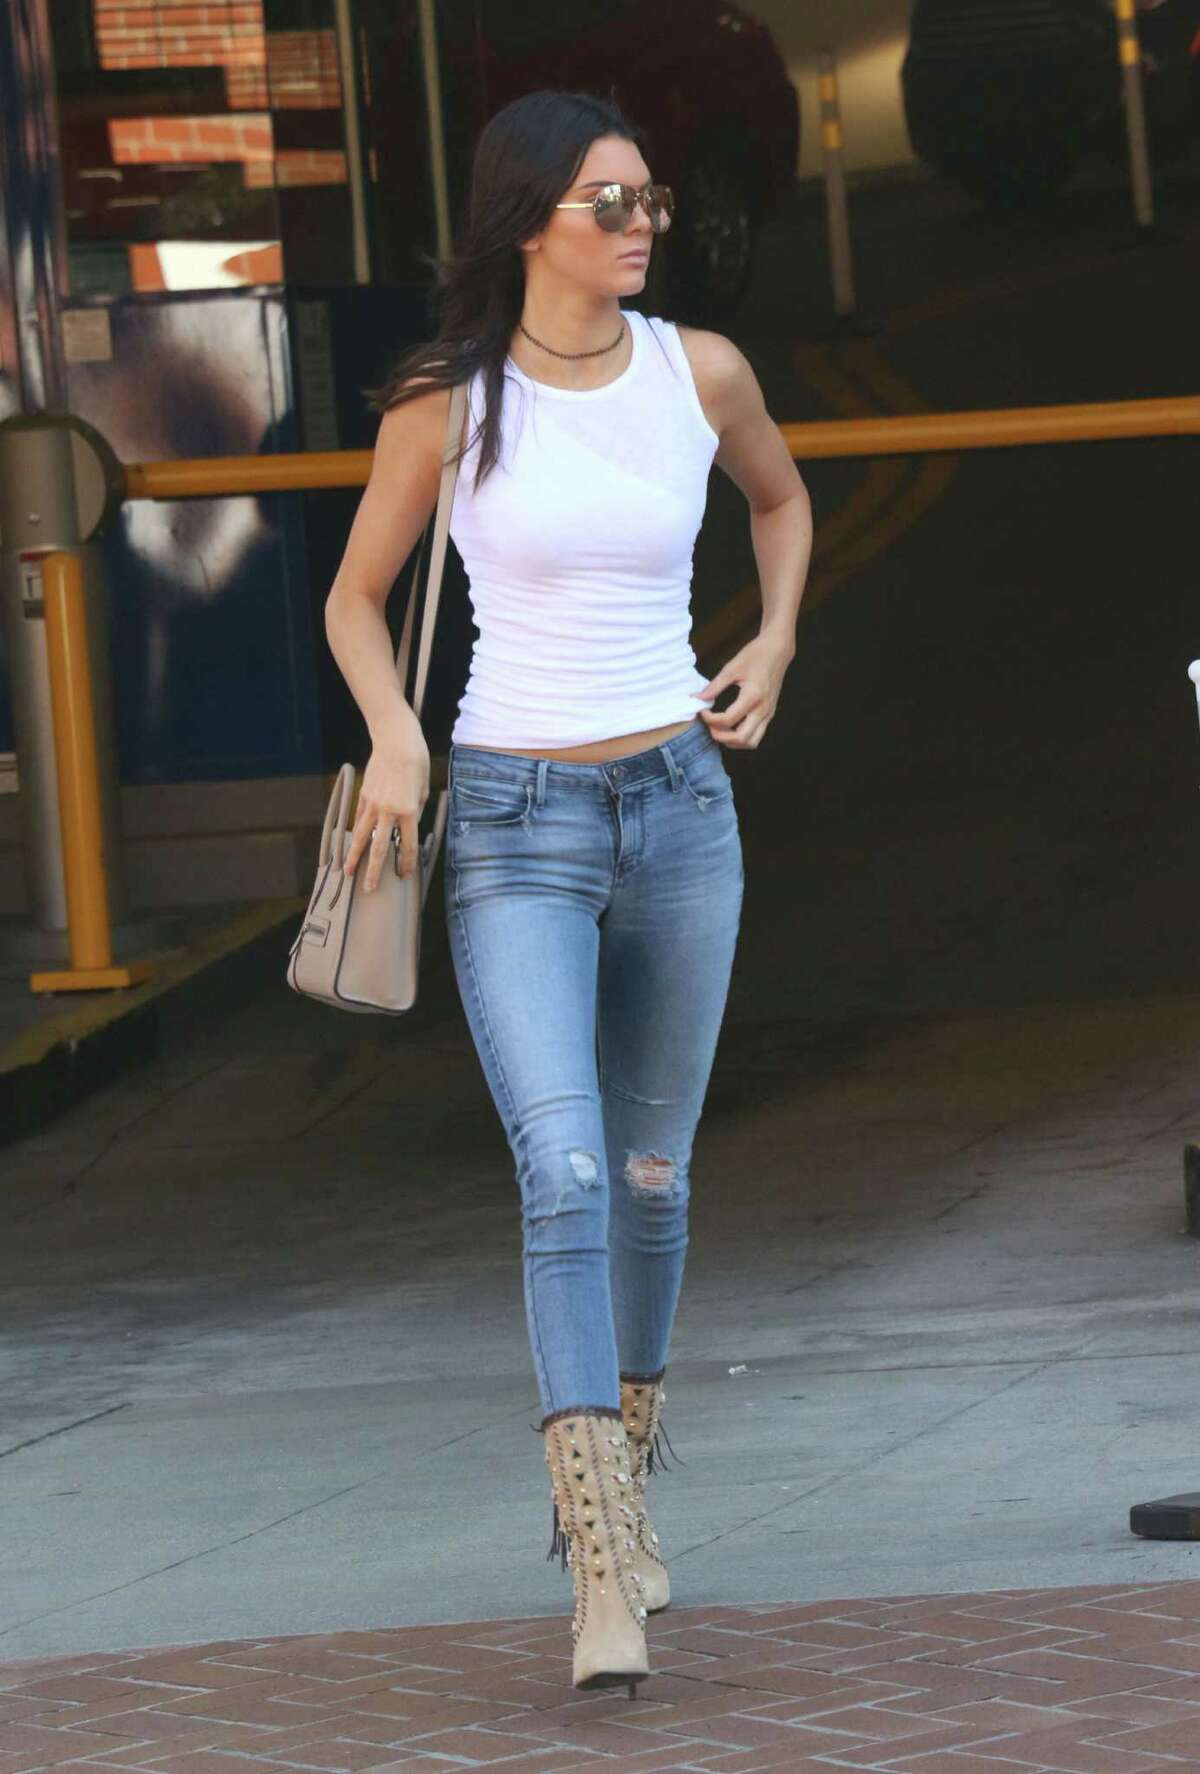 Kendall Jenner is seen on July 17, 2015 in Los Angeles, California. (Photo by KeithJMA/Star Max/GC Images)